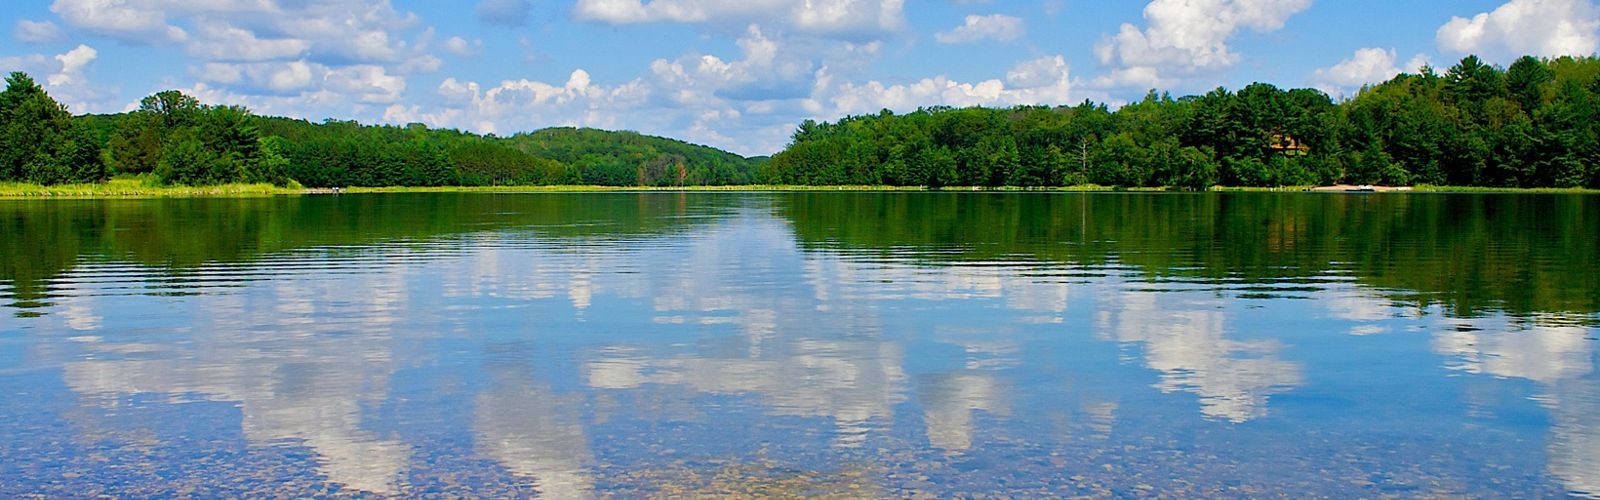 White clouds and blue sky reflected in a tree-lined lake.